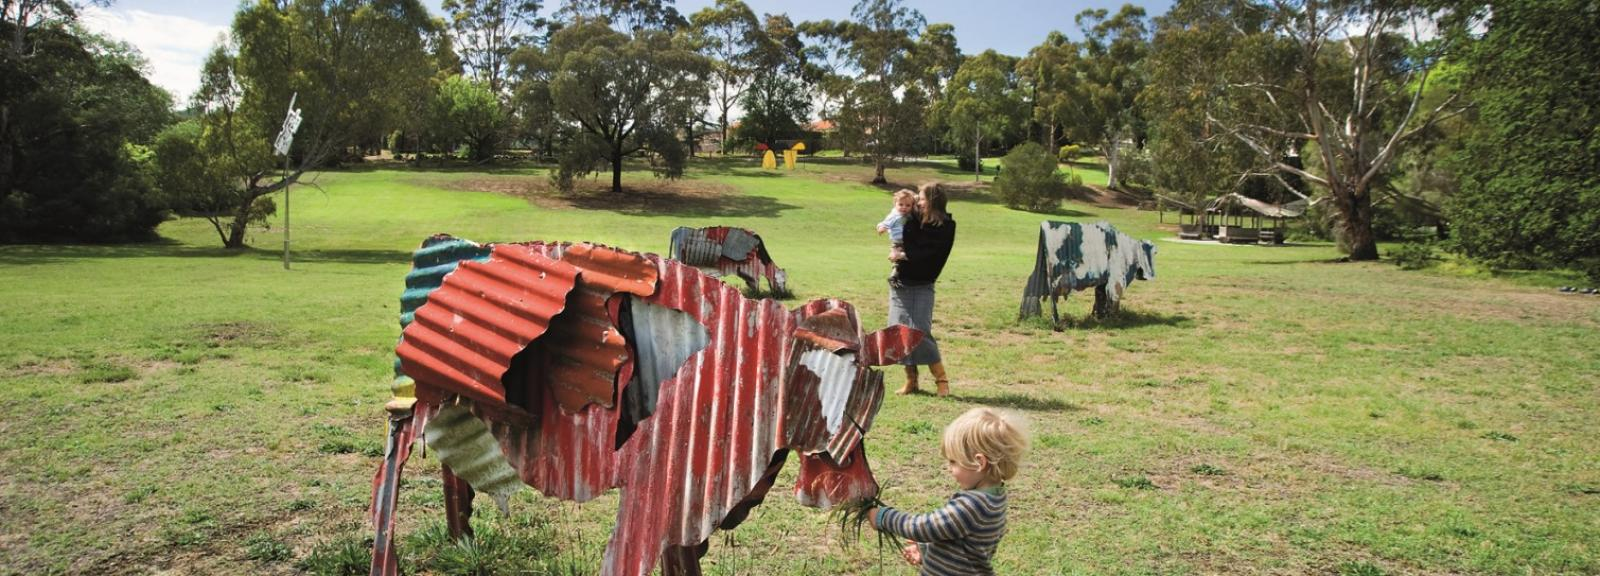 Six of the Best Museums for Kids in Melbourne | Heide Museum of Modern Art